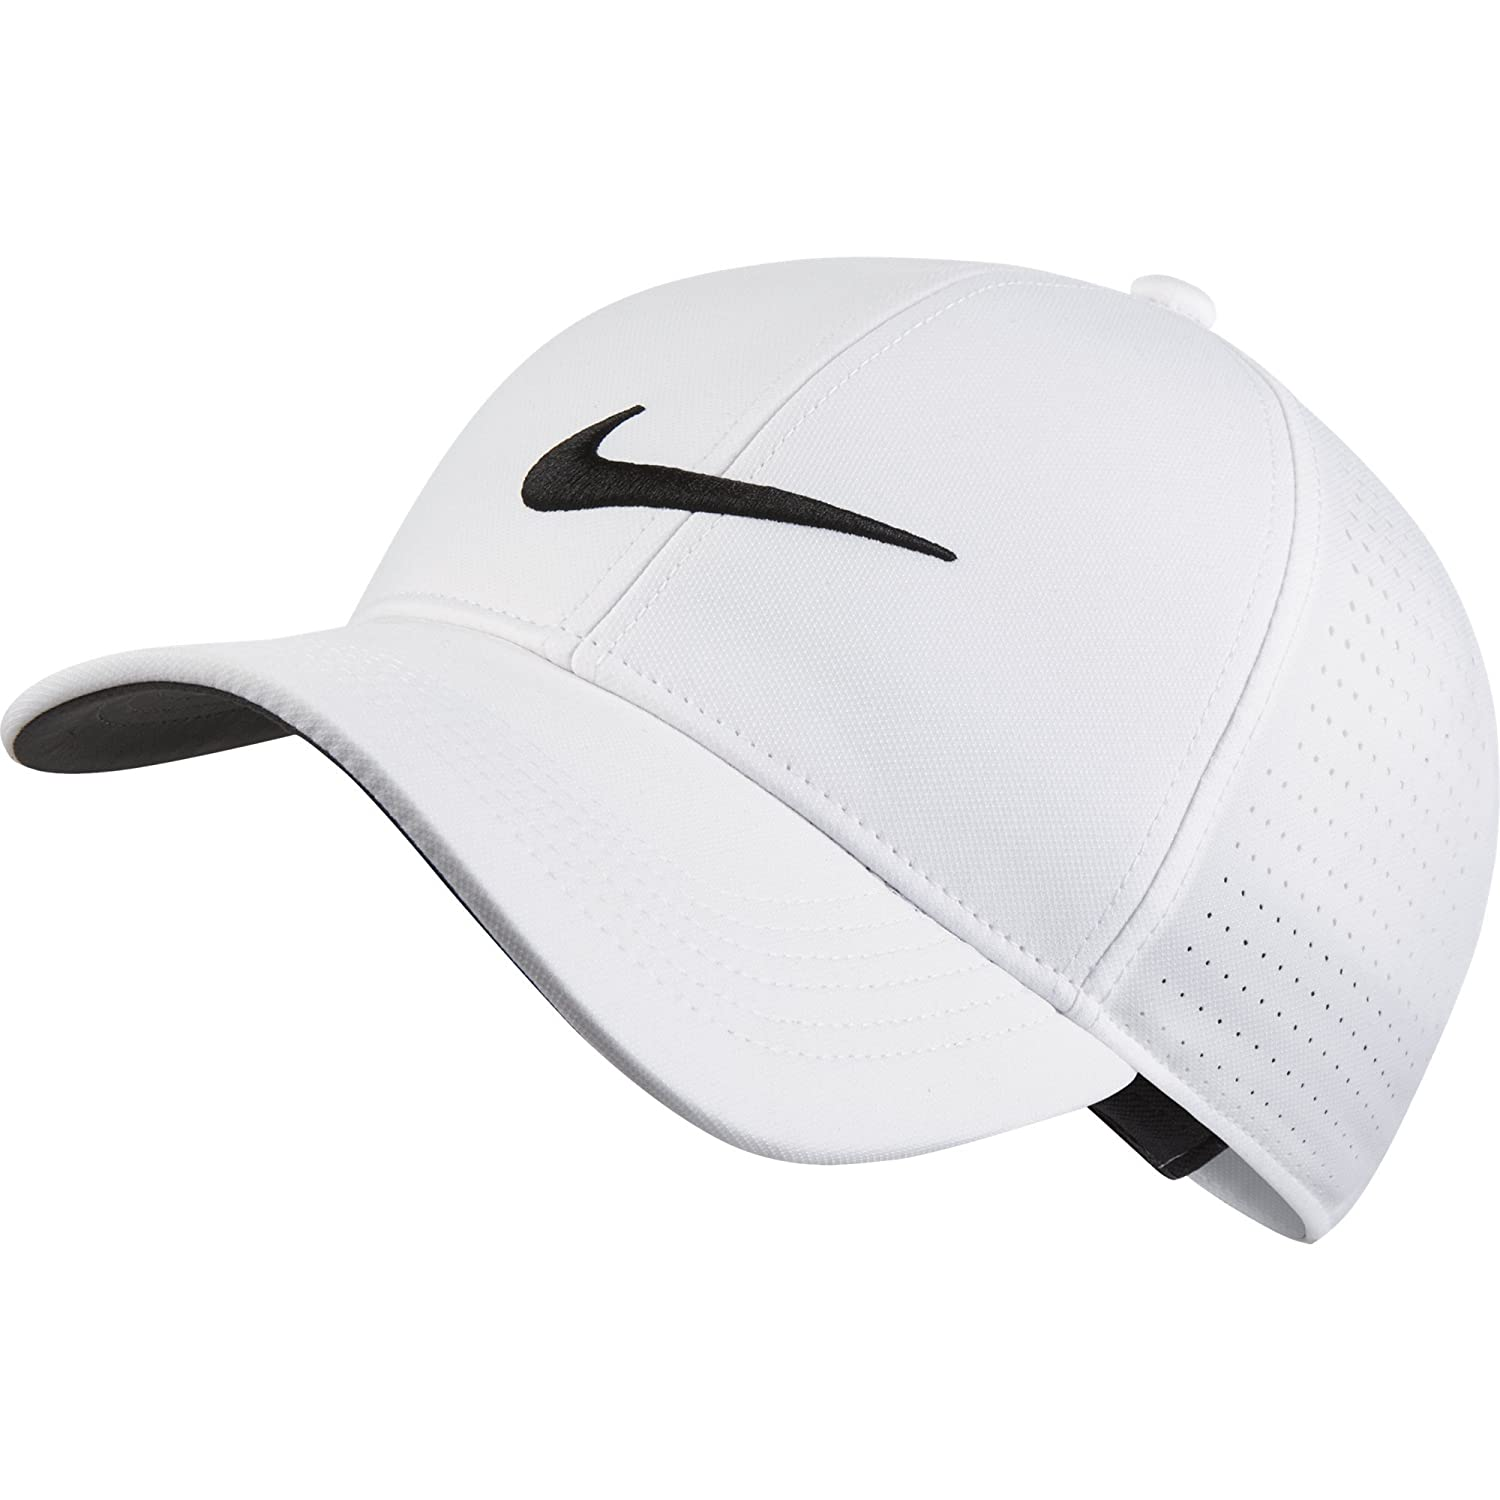 f9670c29 Amazon.com: NIKE Unisex AeroBill Legacy 91 Perforated Golf Cap, Black/Anthracite/White,  One Size: Clothing